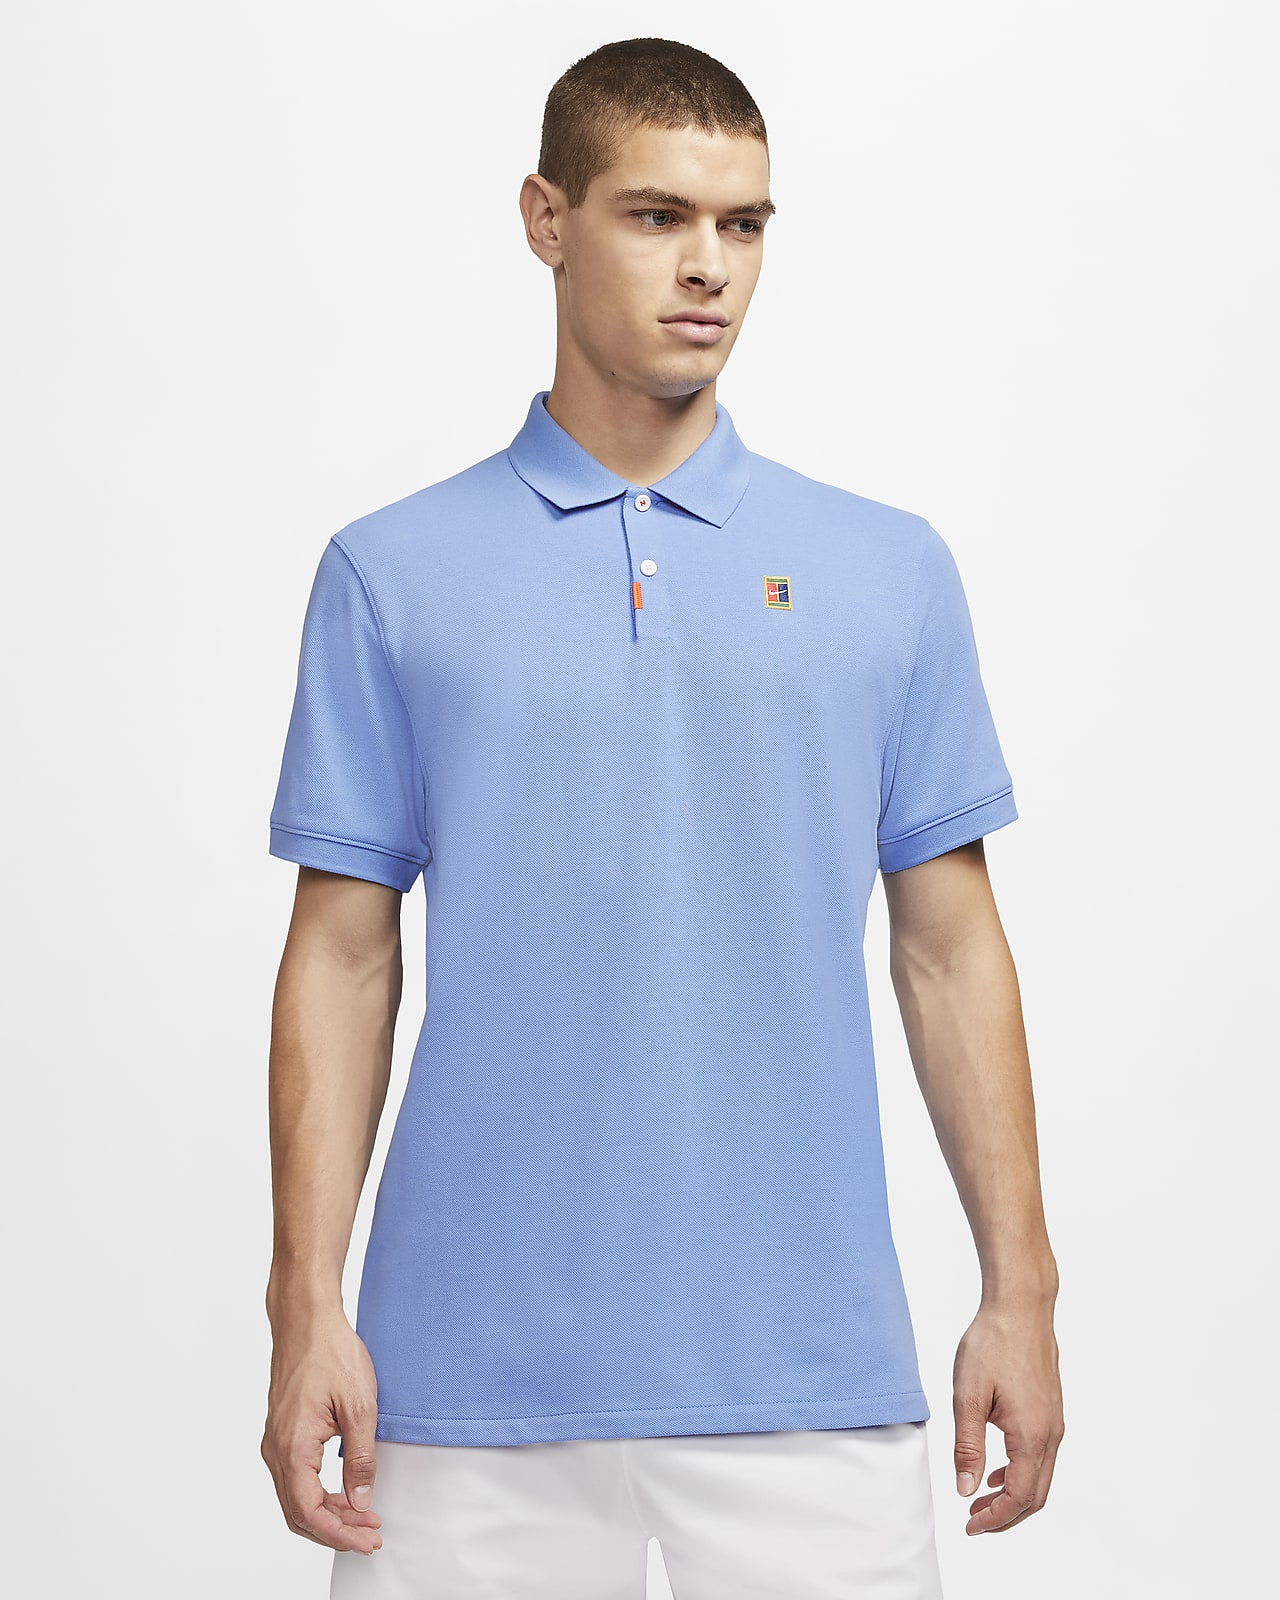 The Nike Polo Men's Slim Fit Polo